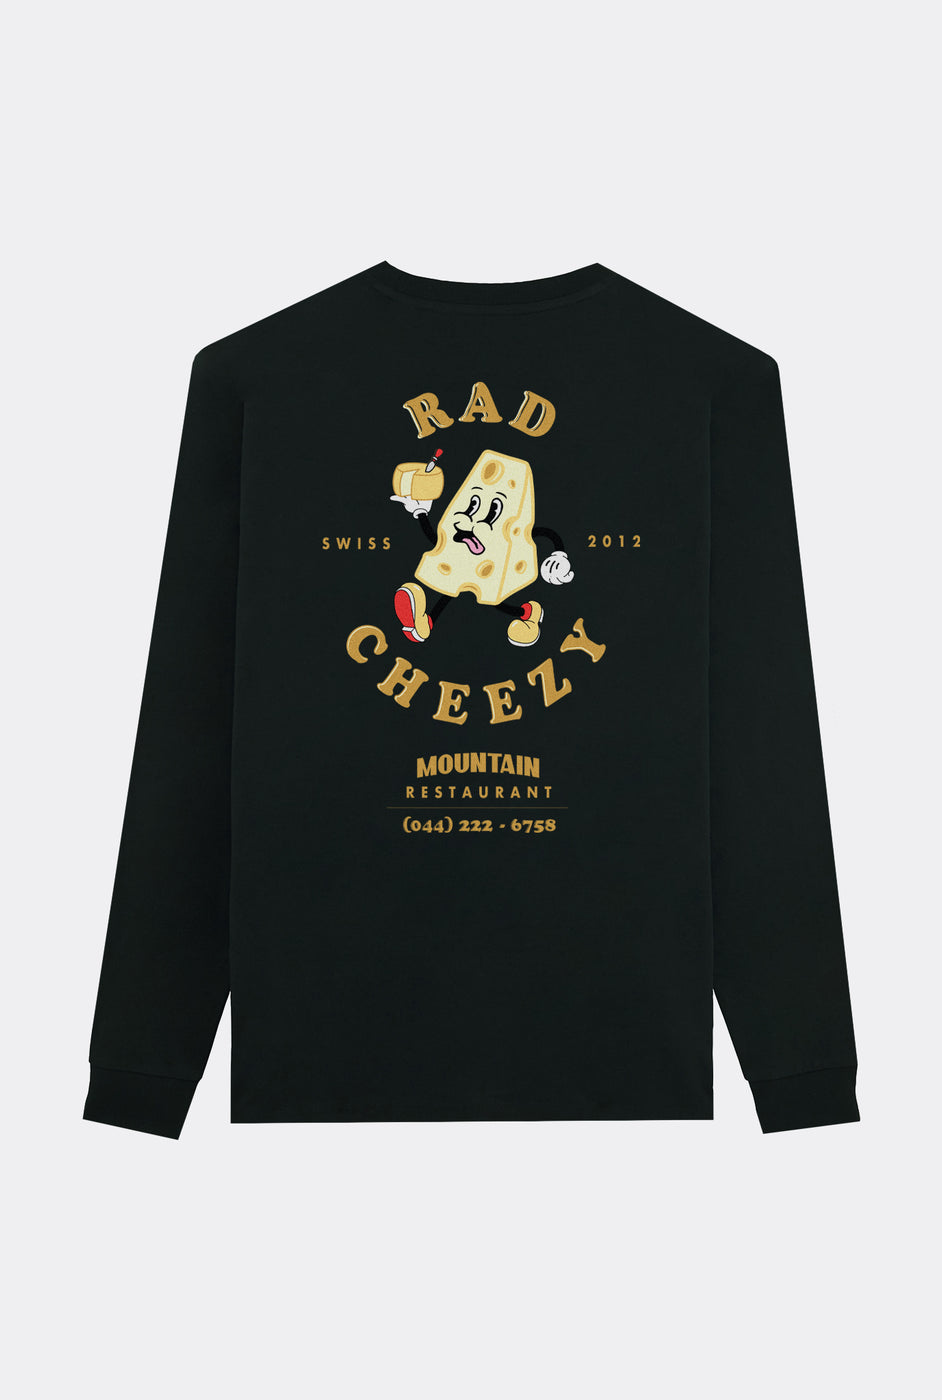 T-Shirt L/S Black Rad Mountain Restaurant